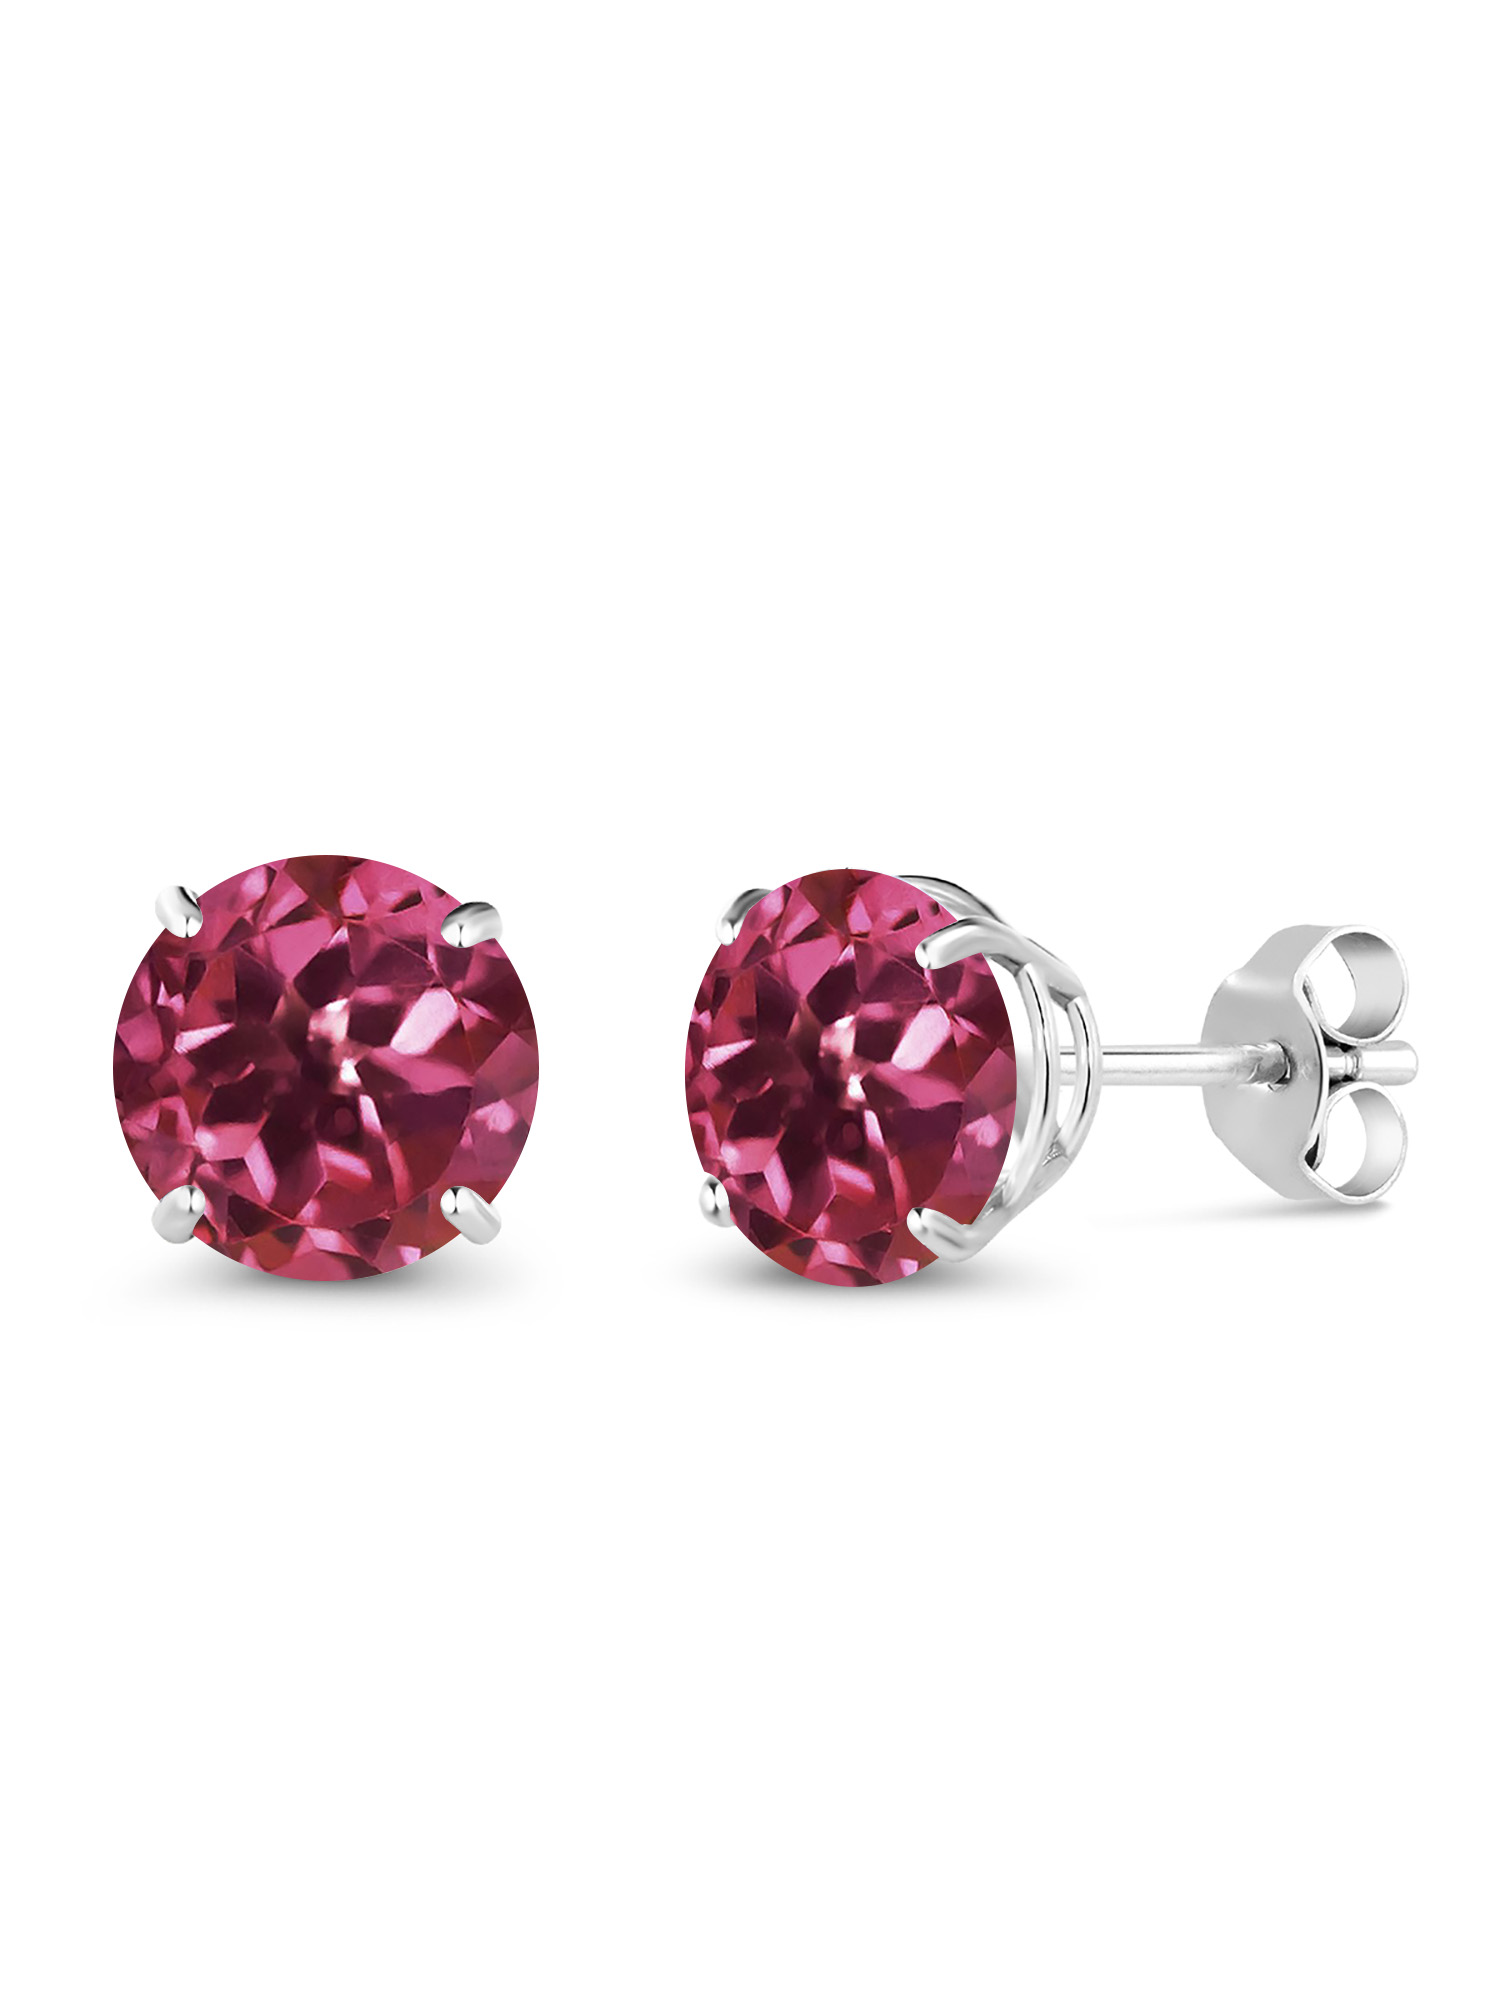 1.00 Ct Round 5mm Pink Tourmaline 18K White Gold Stud Earrings by